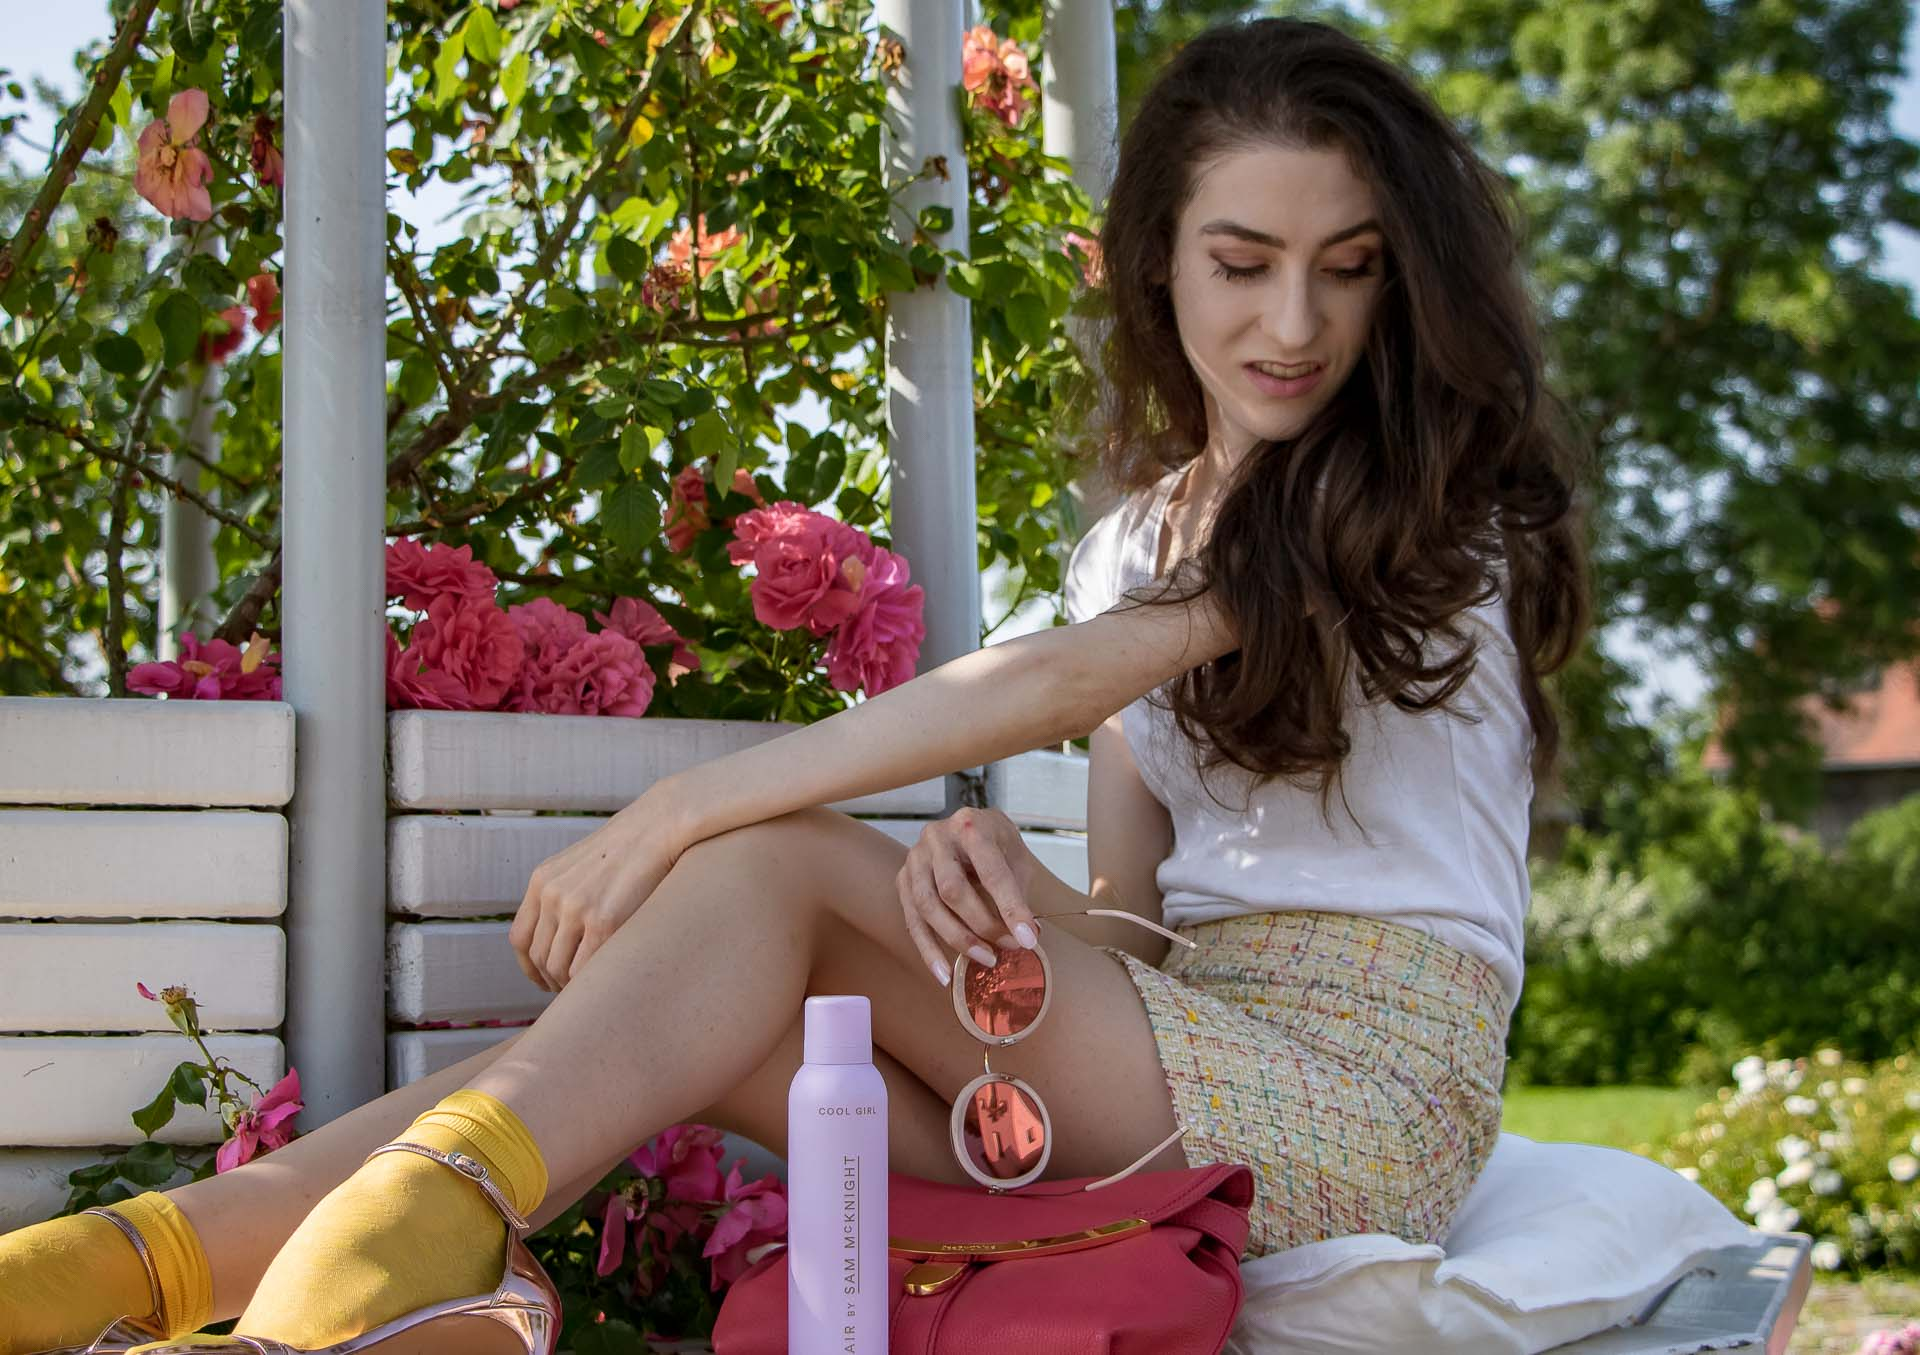 Veronika Lipar Fashion Editor of Brunette from Wall Street in rose garden wearing white t-shirt, tweed mini skirt, yellow socks and Stuart Weitzman sandals